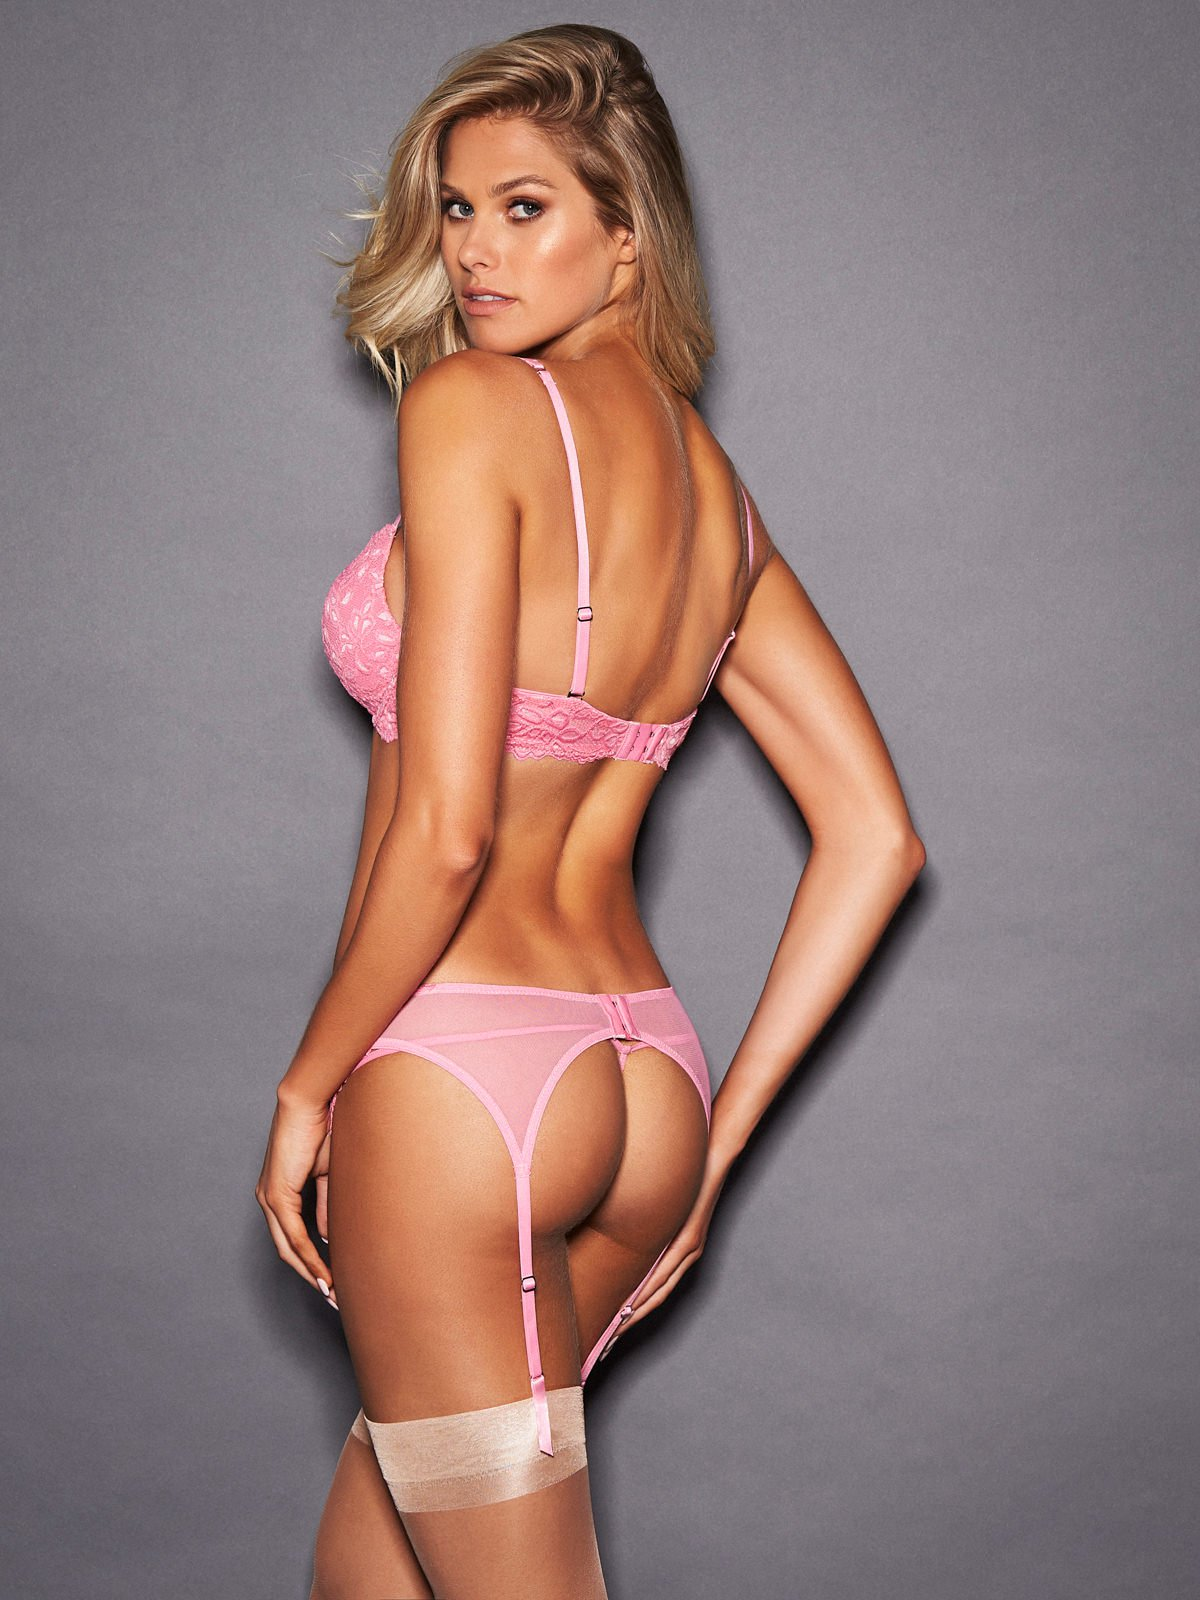 Natalie Roser - Frederick's of Hollywood (February 2018)